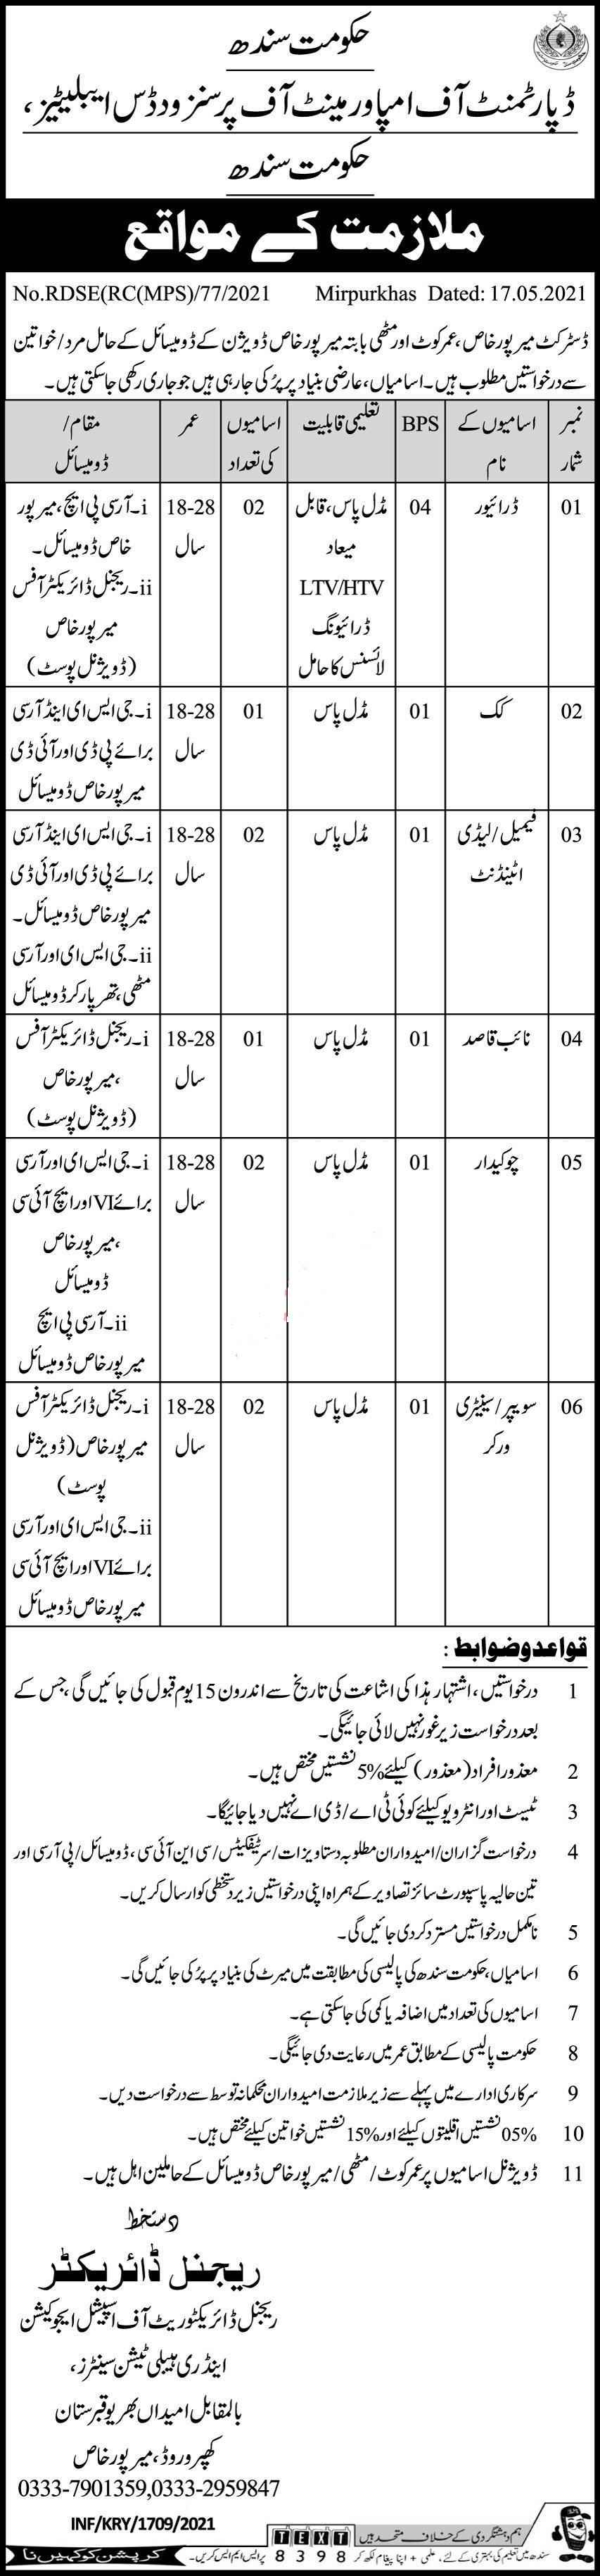 Empowerment of Persons with Disabilities Department Jobs 2021 for Driver, LTV Driver, HTV Driver, Cook, Female Attendant, Lady Attendant, Naib Qasid, Chowkidar, Sweeper, Sanitary Worker